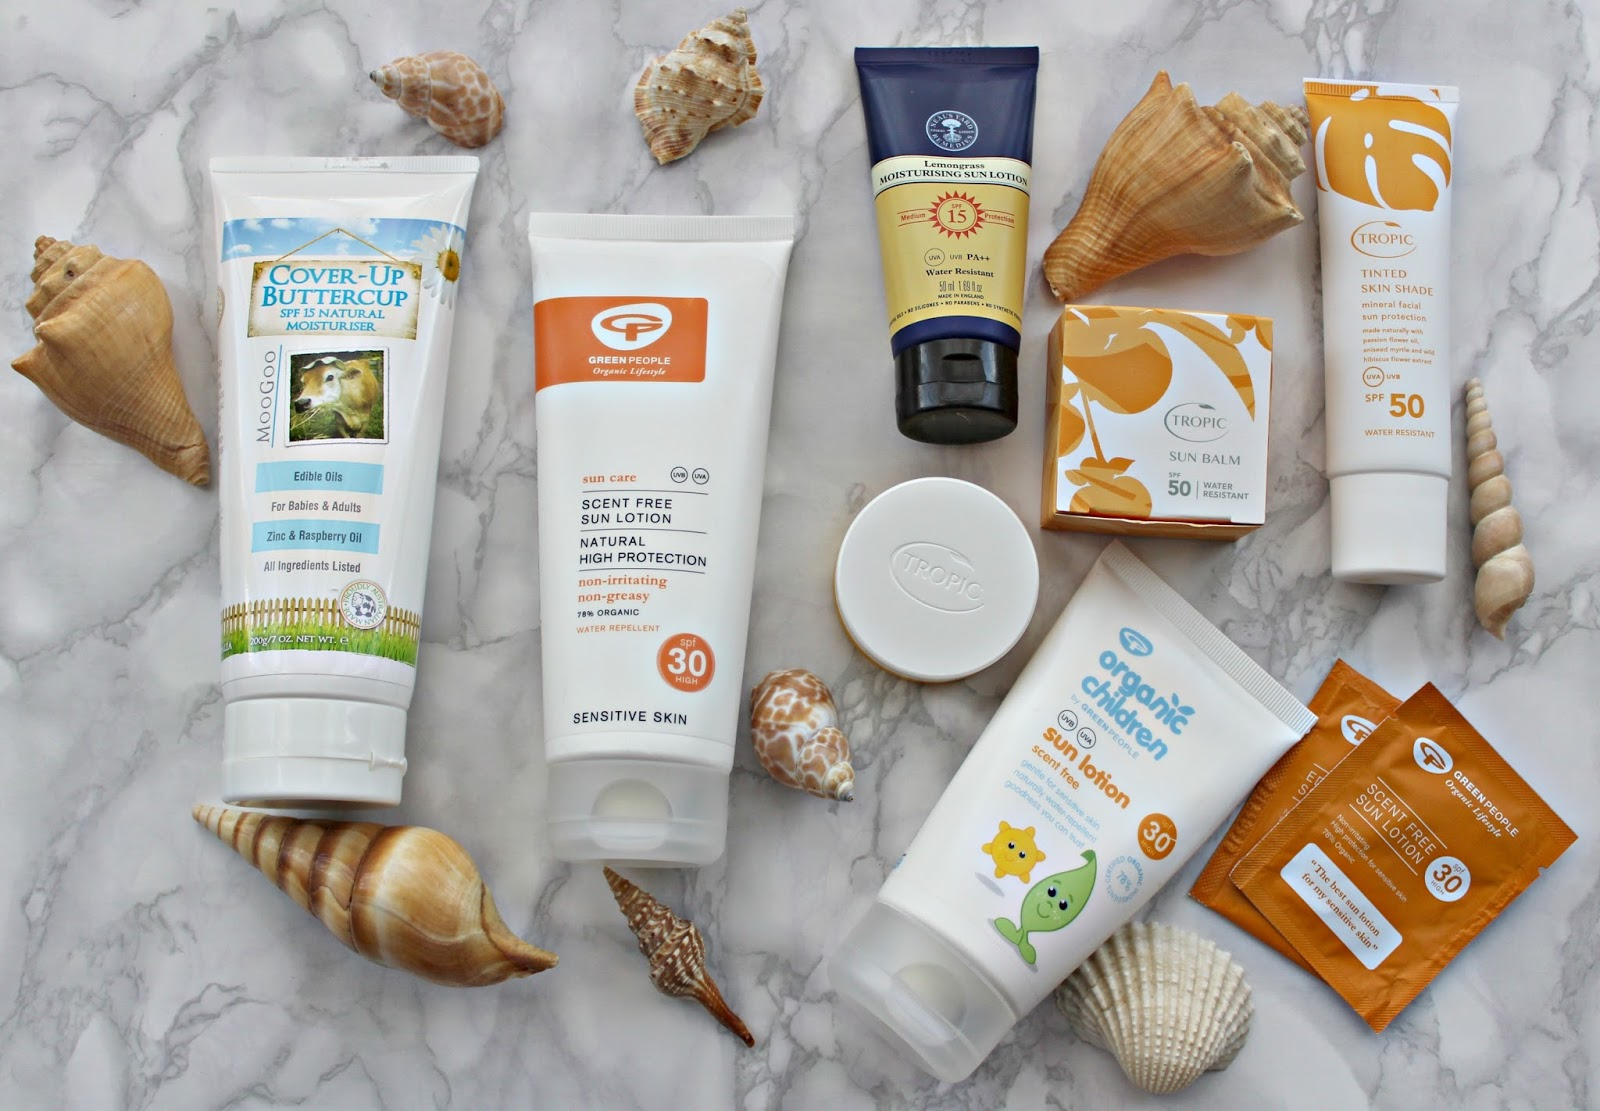 Natural and Organic suncreens tried and tested: Featuring Moogoo, Tropic Skincare, Neals Yard Remedies and Green People